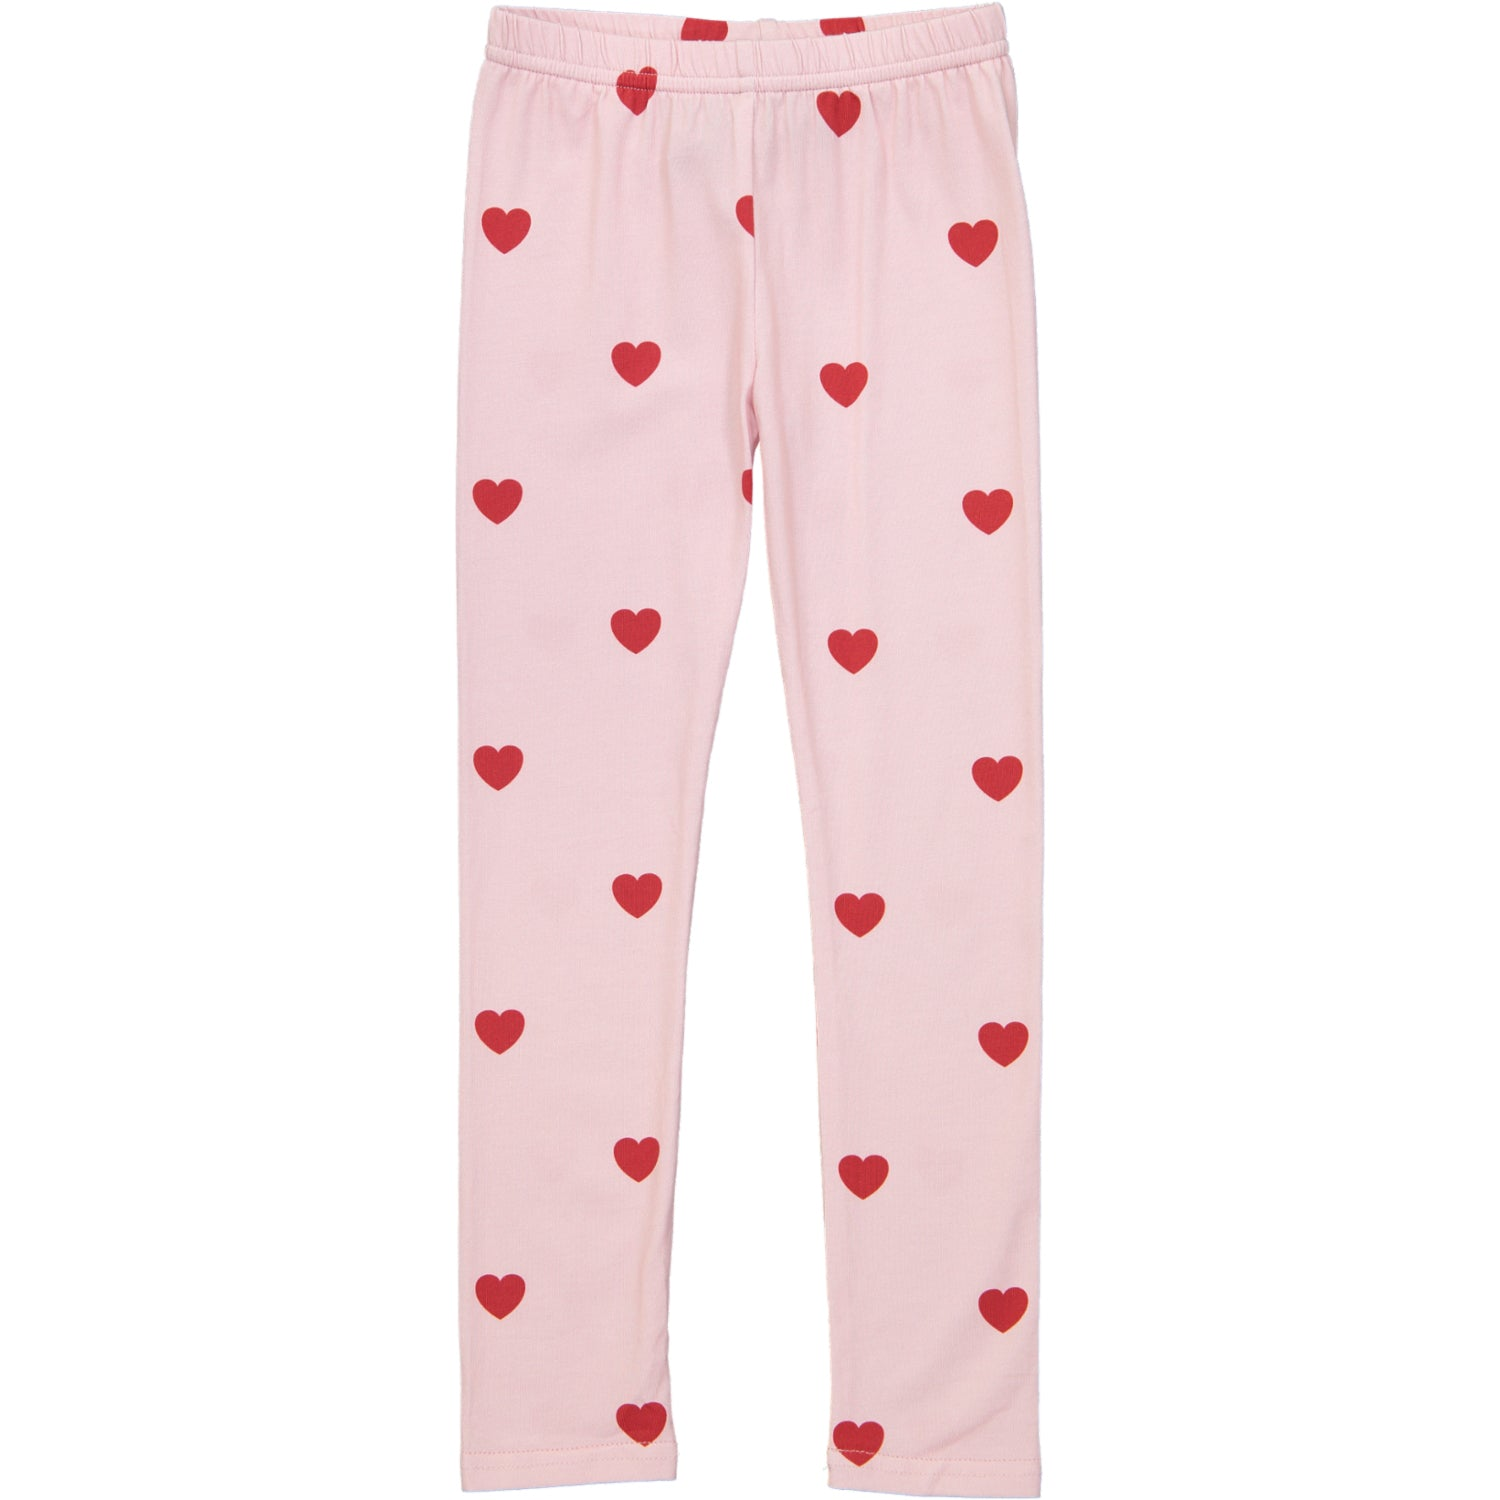 Leggings-Kip and Co Red Hearts